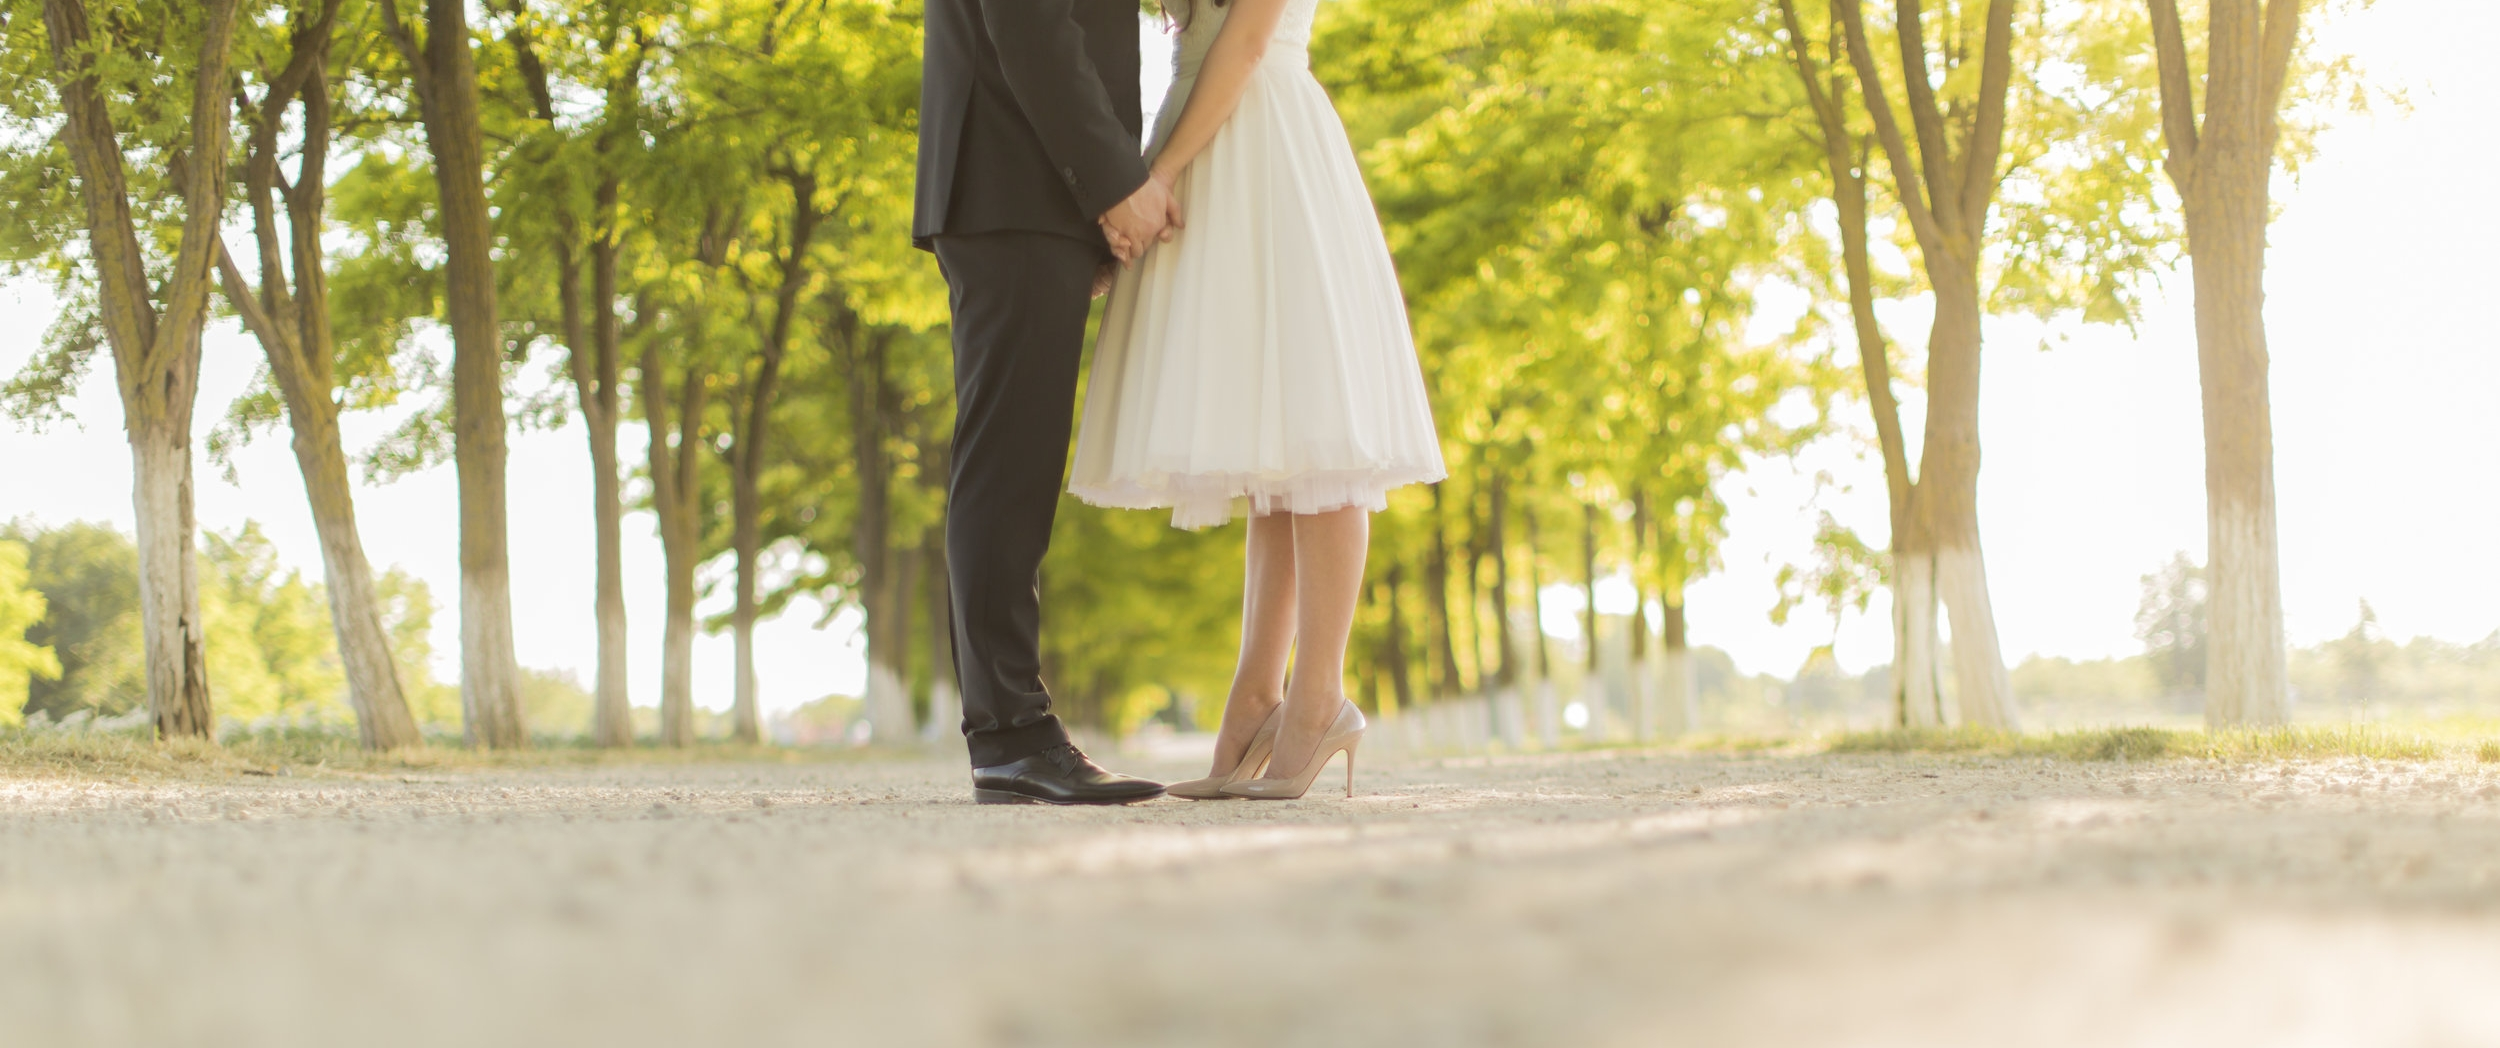 Wedding Video Packages - Discounted pricing available to all customers!